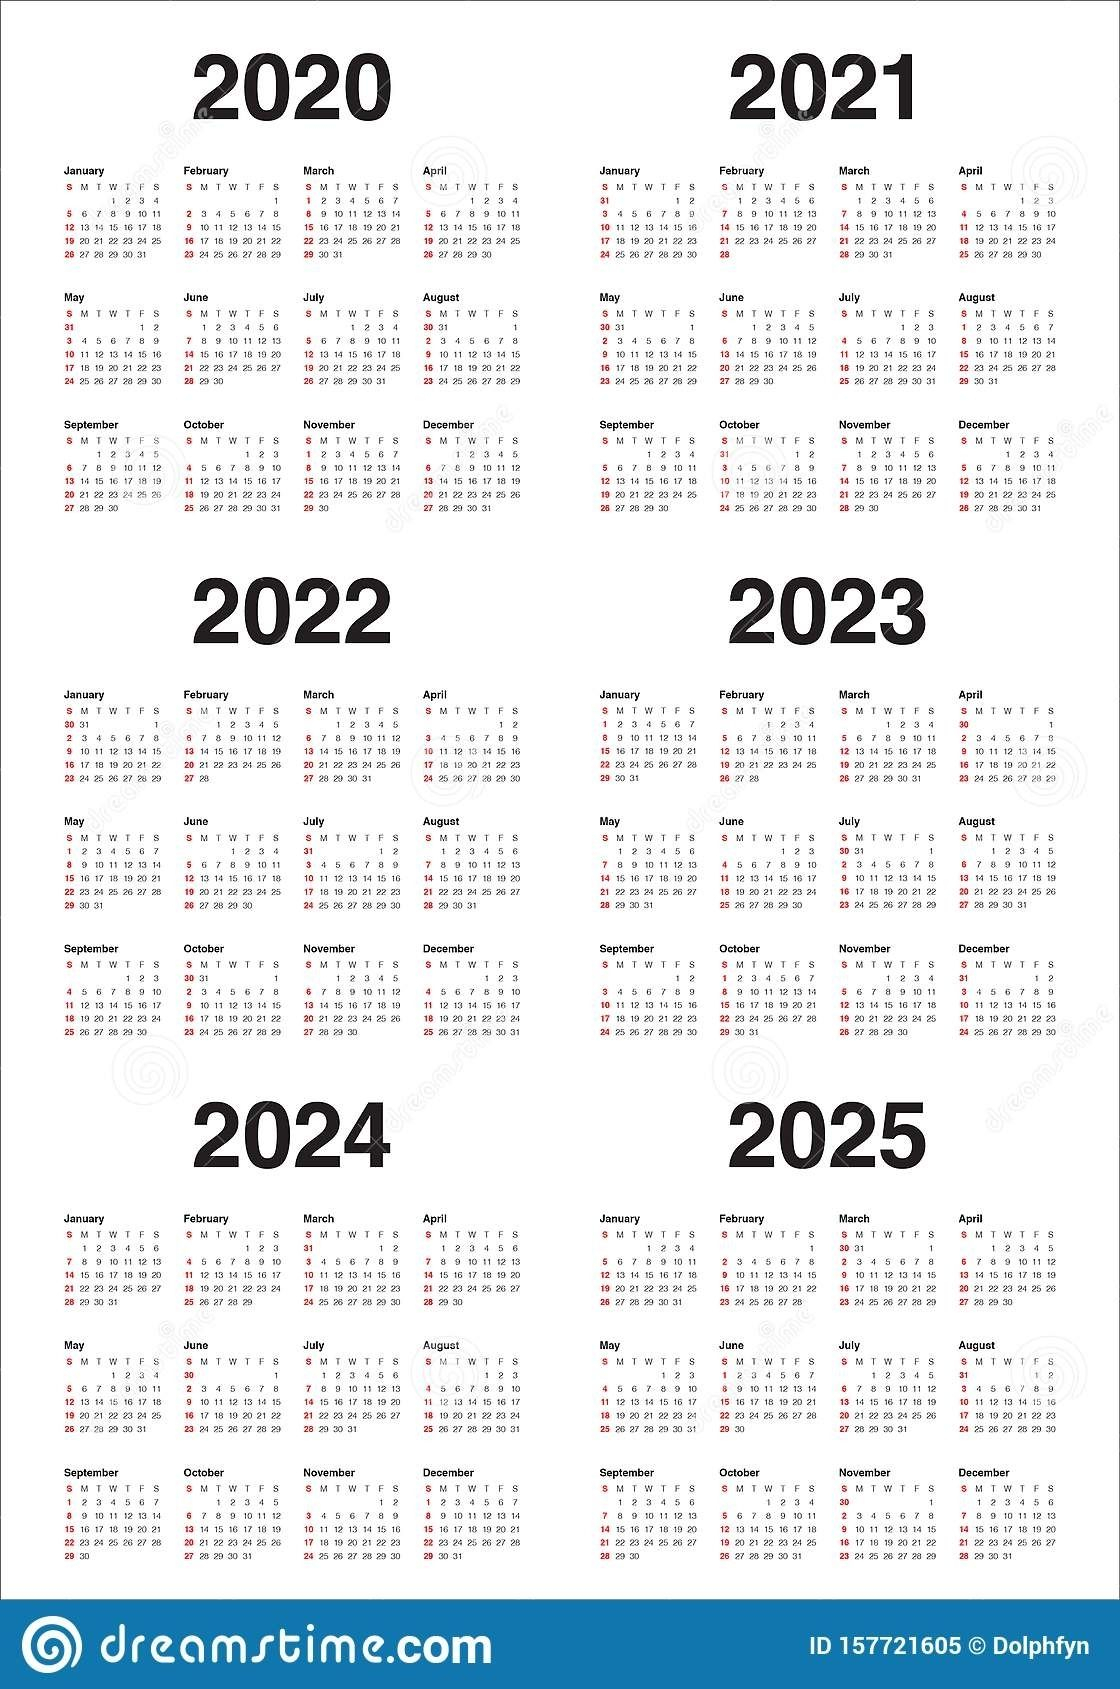 Printable 3 Year Calendars 2021 2022 2023 In 2020 | Yearly intended for Three Year Printable Calendar 2021 To 2023